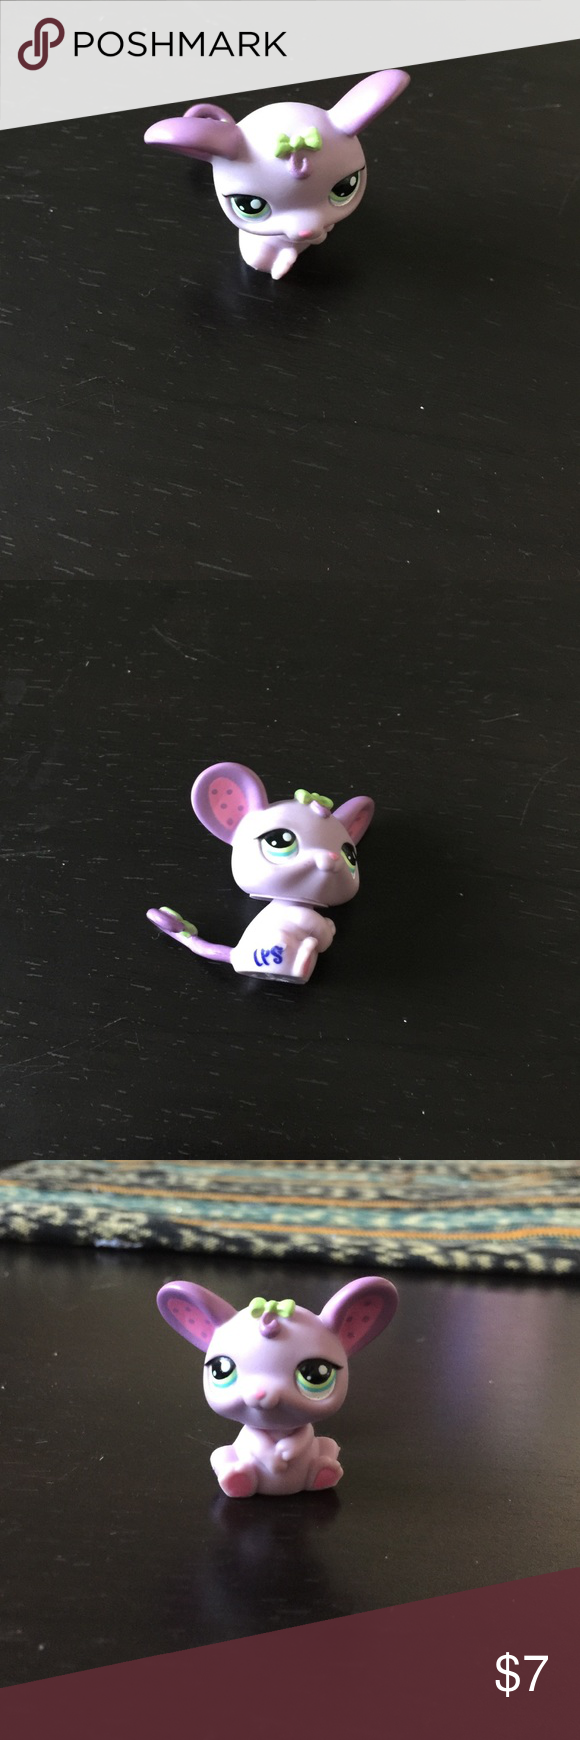 2007 LITTLEST PET SHOP Adorable 2007 Littlest Pet Shop Adorable Purple Mouse Green Eyes & Bow Hasbro LPS Toy. Littlest Pet Shop we have 100's if you don't see the one you're looking for just ask... Little Pet Shop Accessories